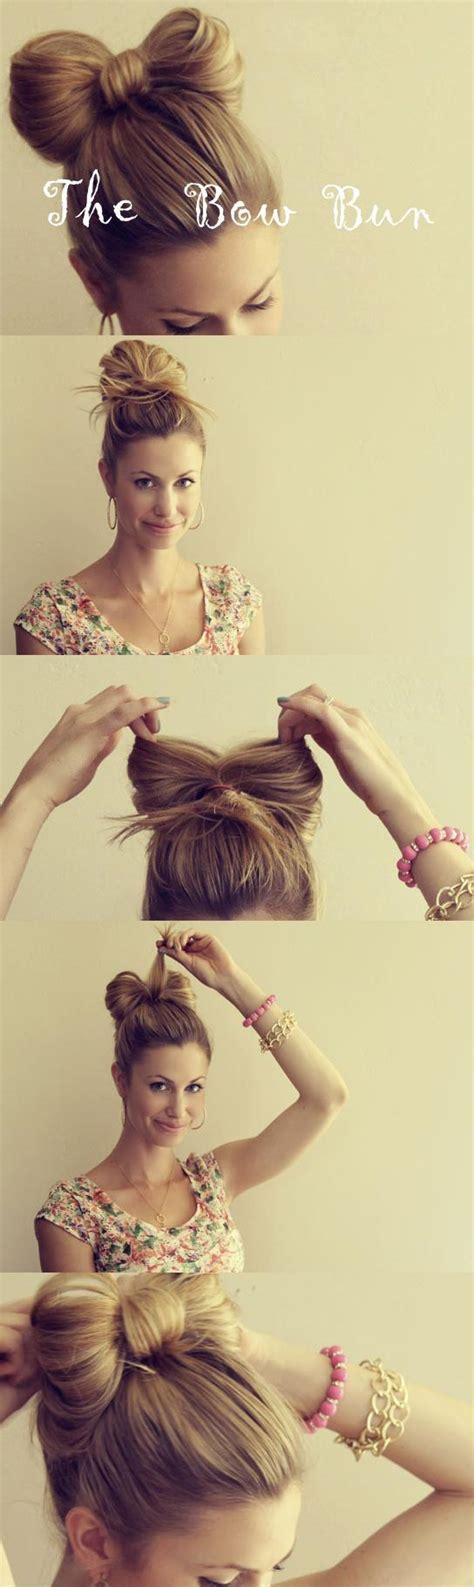 diy hairstyles bow diy hair bow bun tutorial gorgeous wedding hair 803705